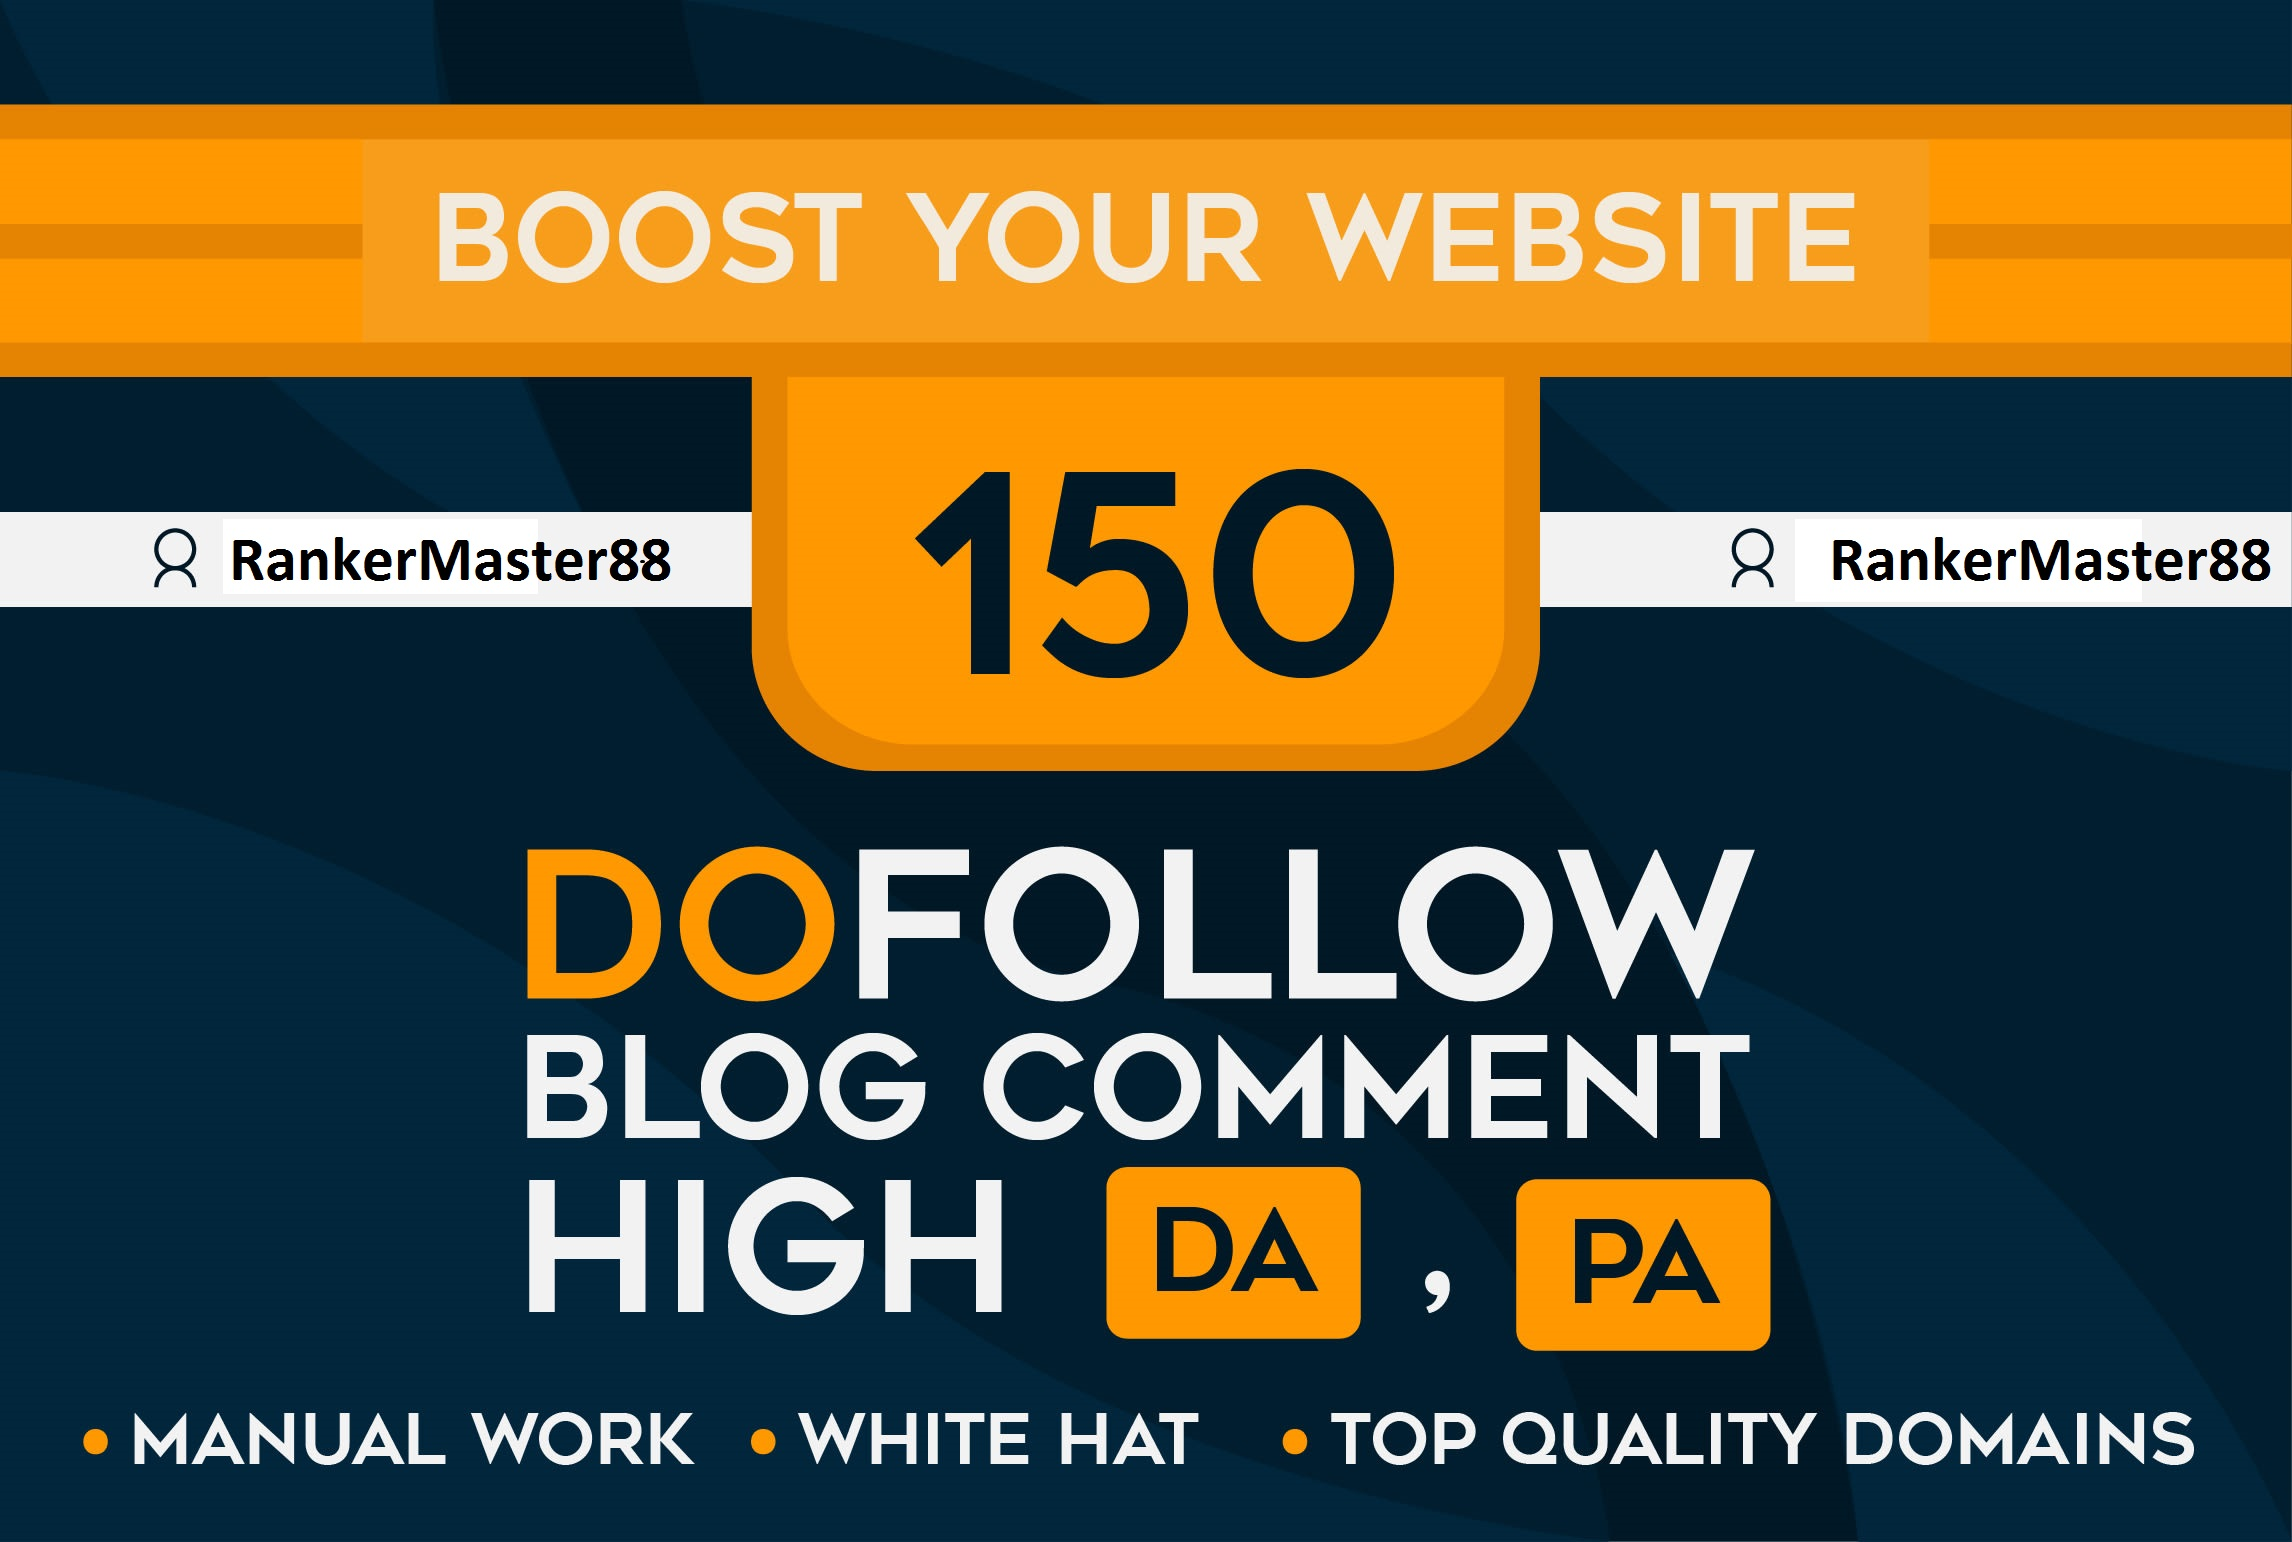 I will Provide 150 DoFollow Blog C0mments Backlinks on High DA PA for Rank Your Website